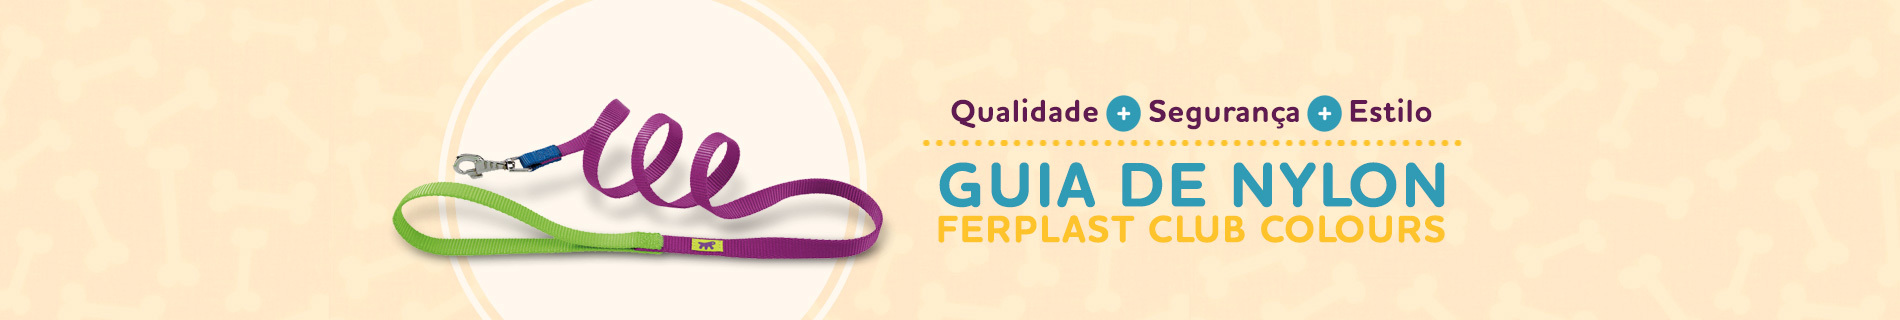 Guia de Nylon Ferplast Club Colours